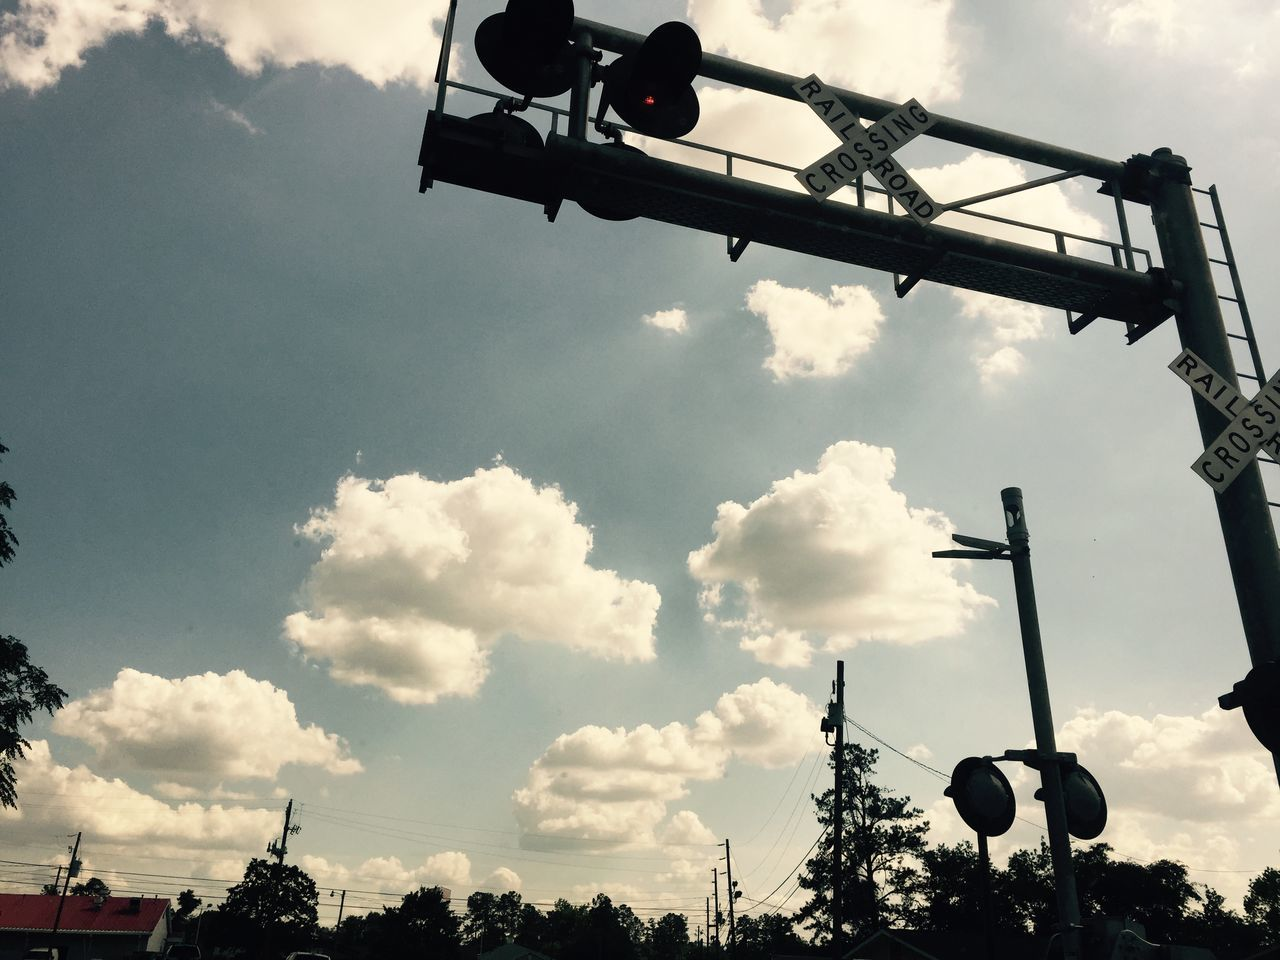 Low Angle View Of Railroad Crossing Sign Against Cloudy Sky